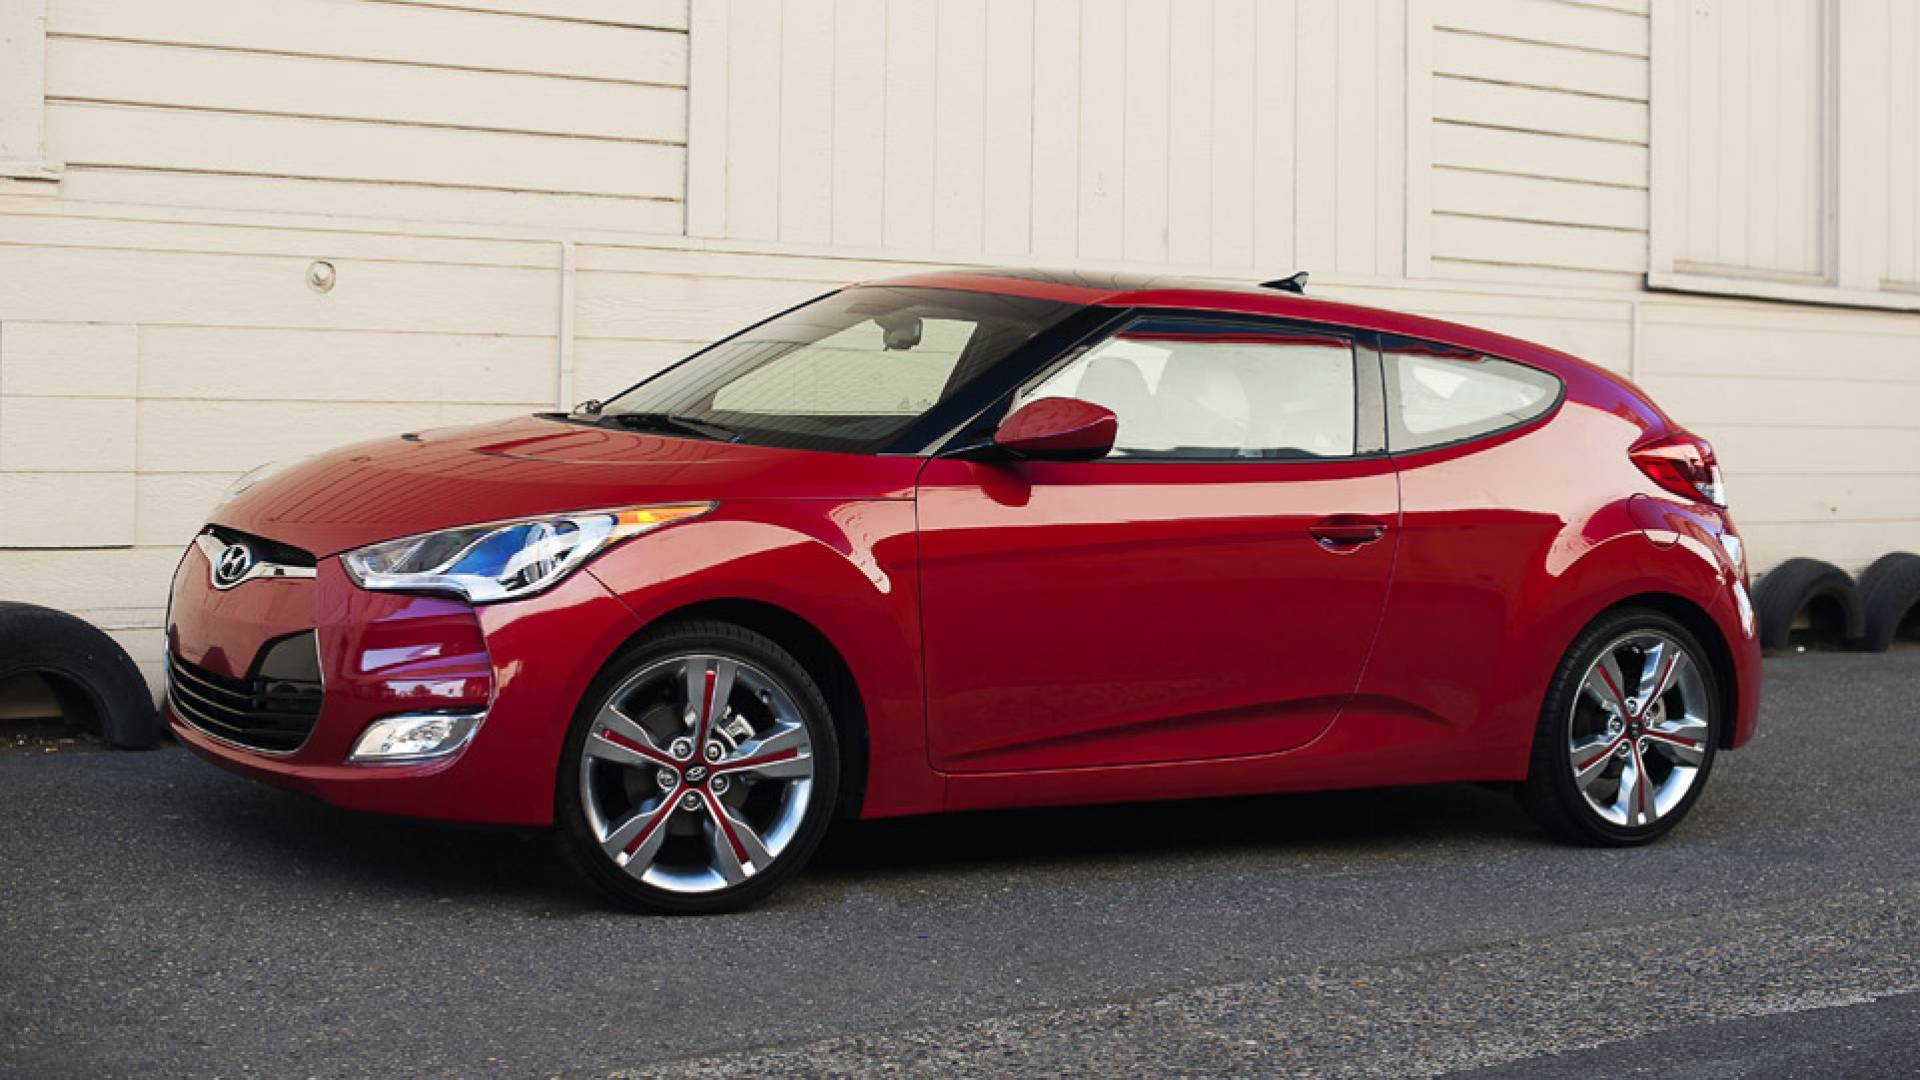 a seconds new you jacksonville veloster if sale redirected few not bl click htm hyundai fl here please are for within